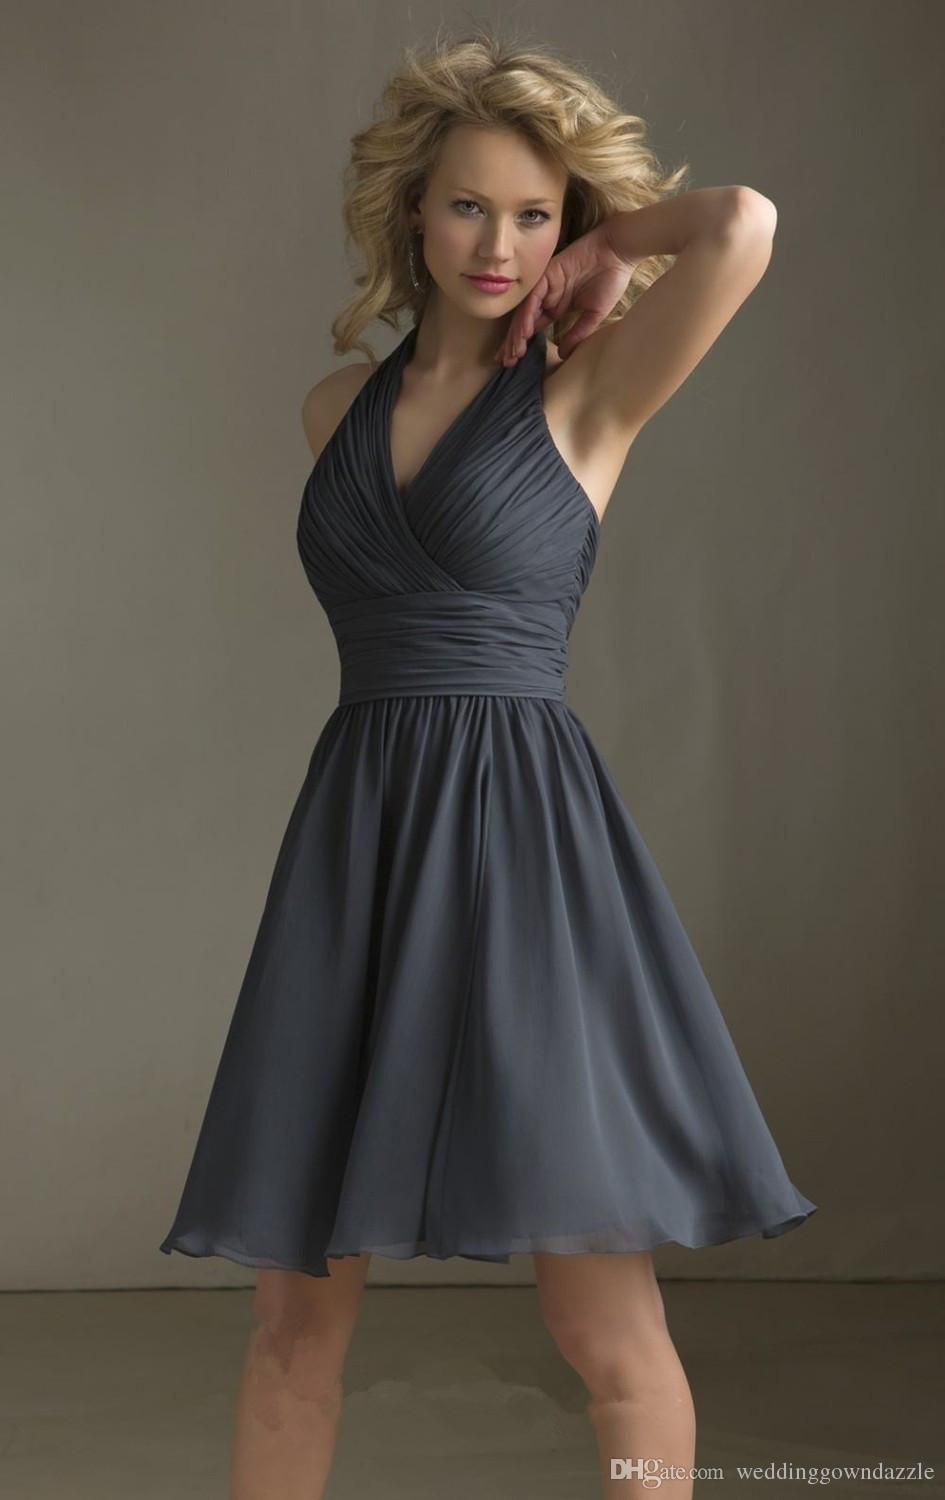 Buy wholesale alternative bridesmaid dressesautumn bridesmaid alternative bridesmaid dresses ombrellifo Image collections